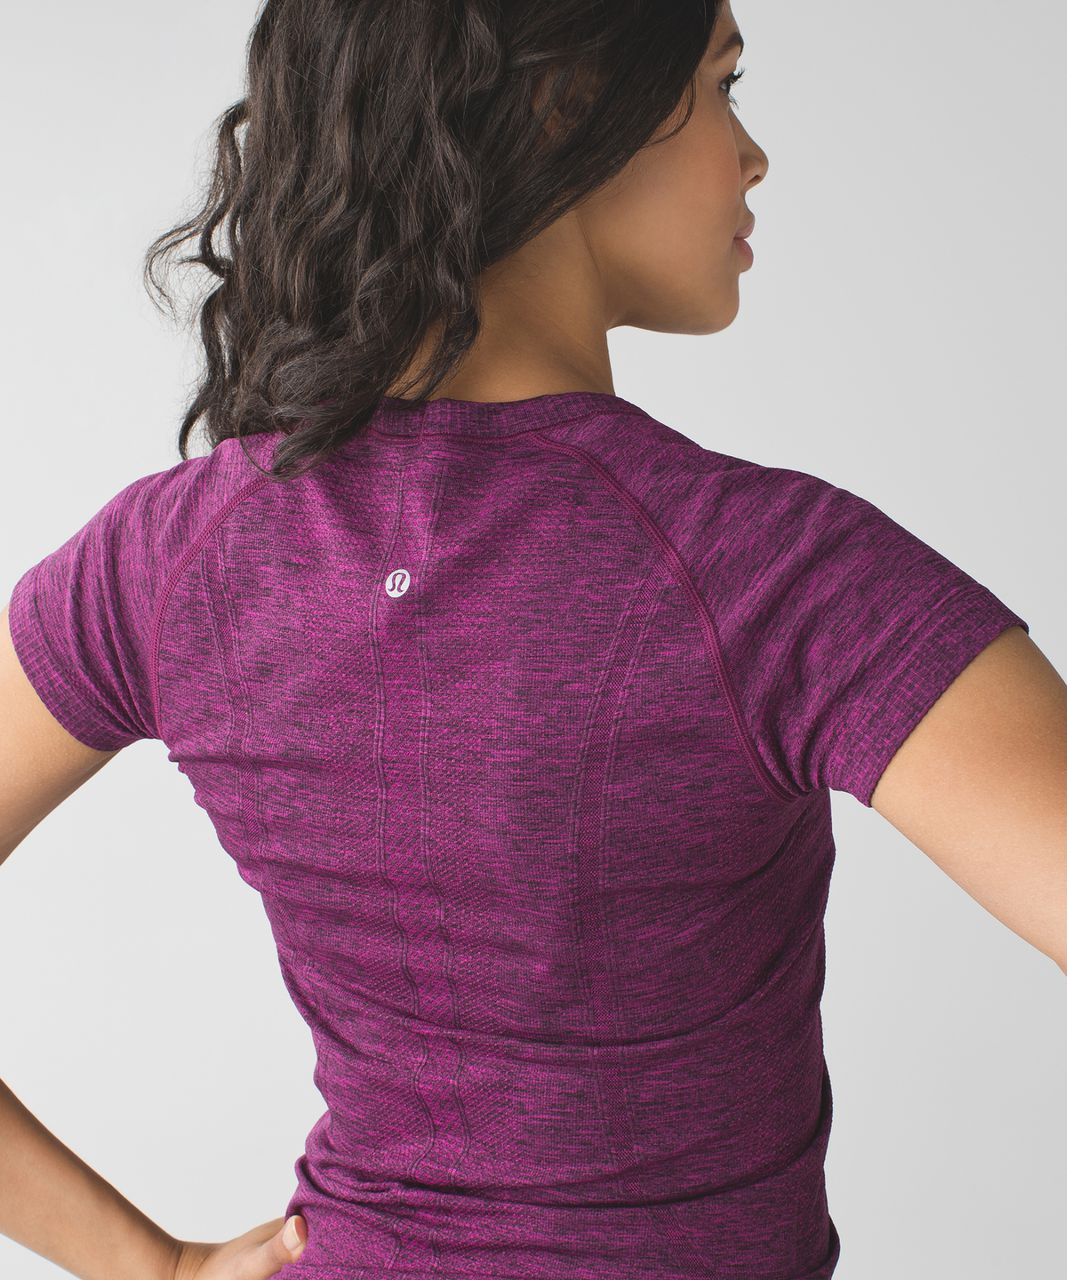 Lululemon Swiftly Tech Short Sleeve Crew - Heathered Raspberry